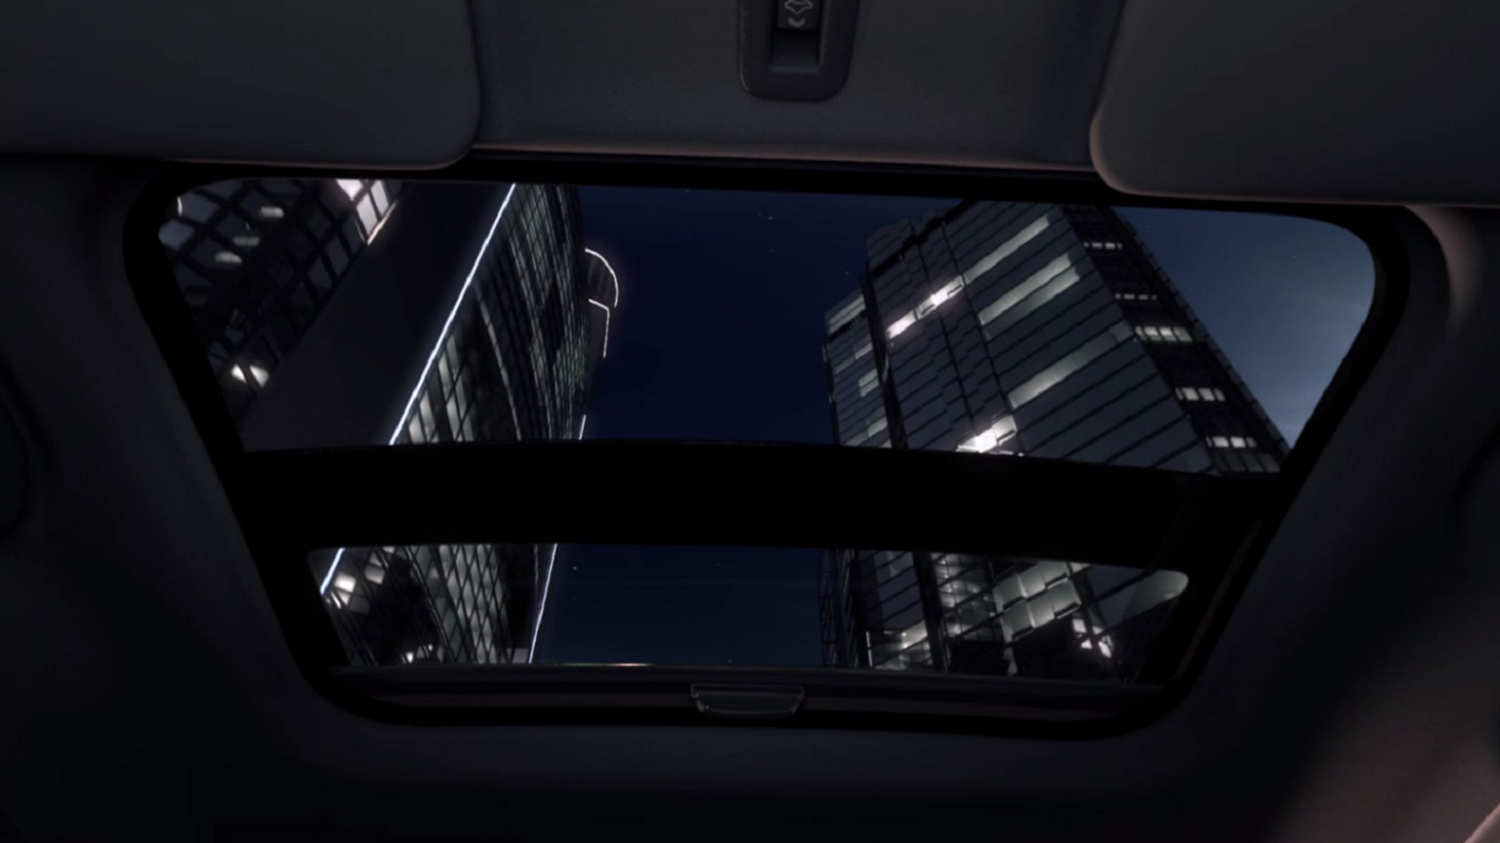 Compact & mini SUV design - Power panoramic sunroof | Nissan Juke